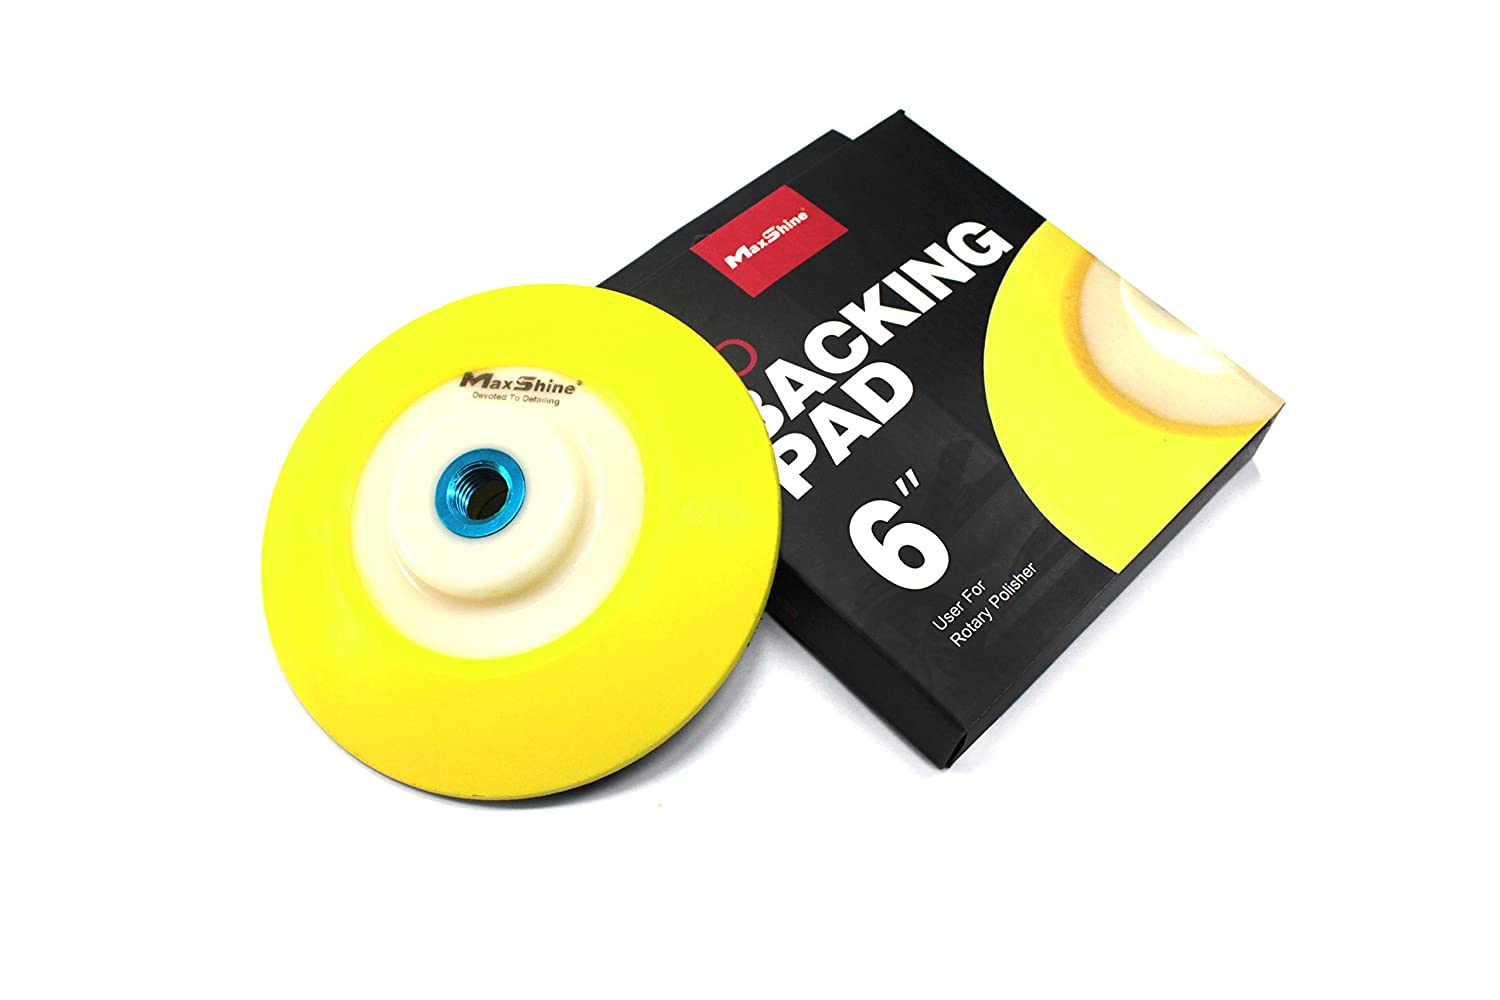 Maxshine 6 inches/Dia:150mm, Thread: 5/8' Rotary Polisher/RO Backing Pad-Yellow PU Hook & Loop Face Thread: 5/8 Rotary Polisher/RO Backing Pad-Yellow PU Hook & Loop Face